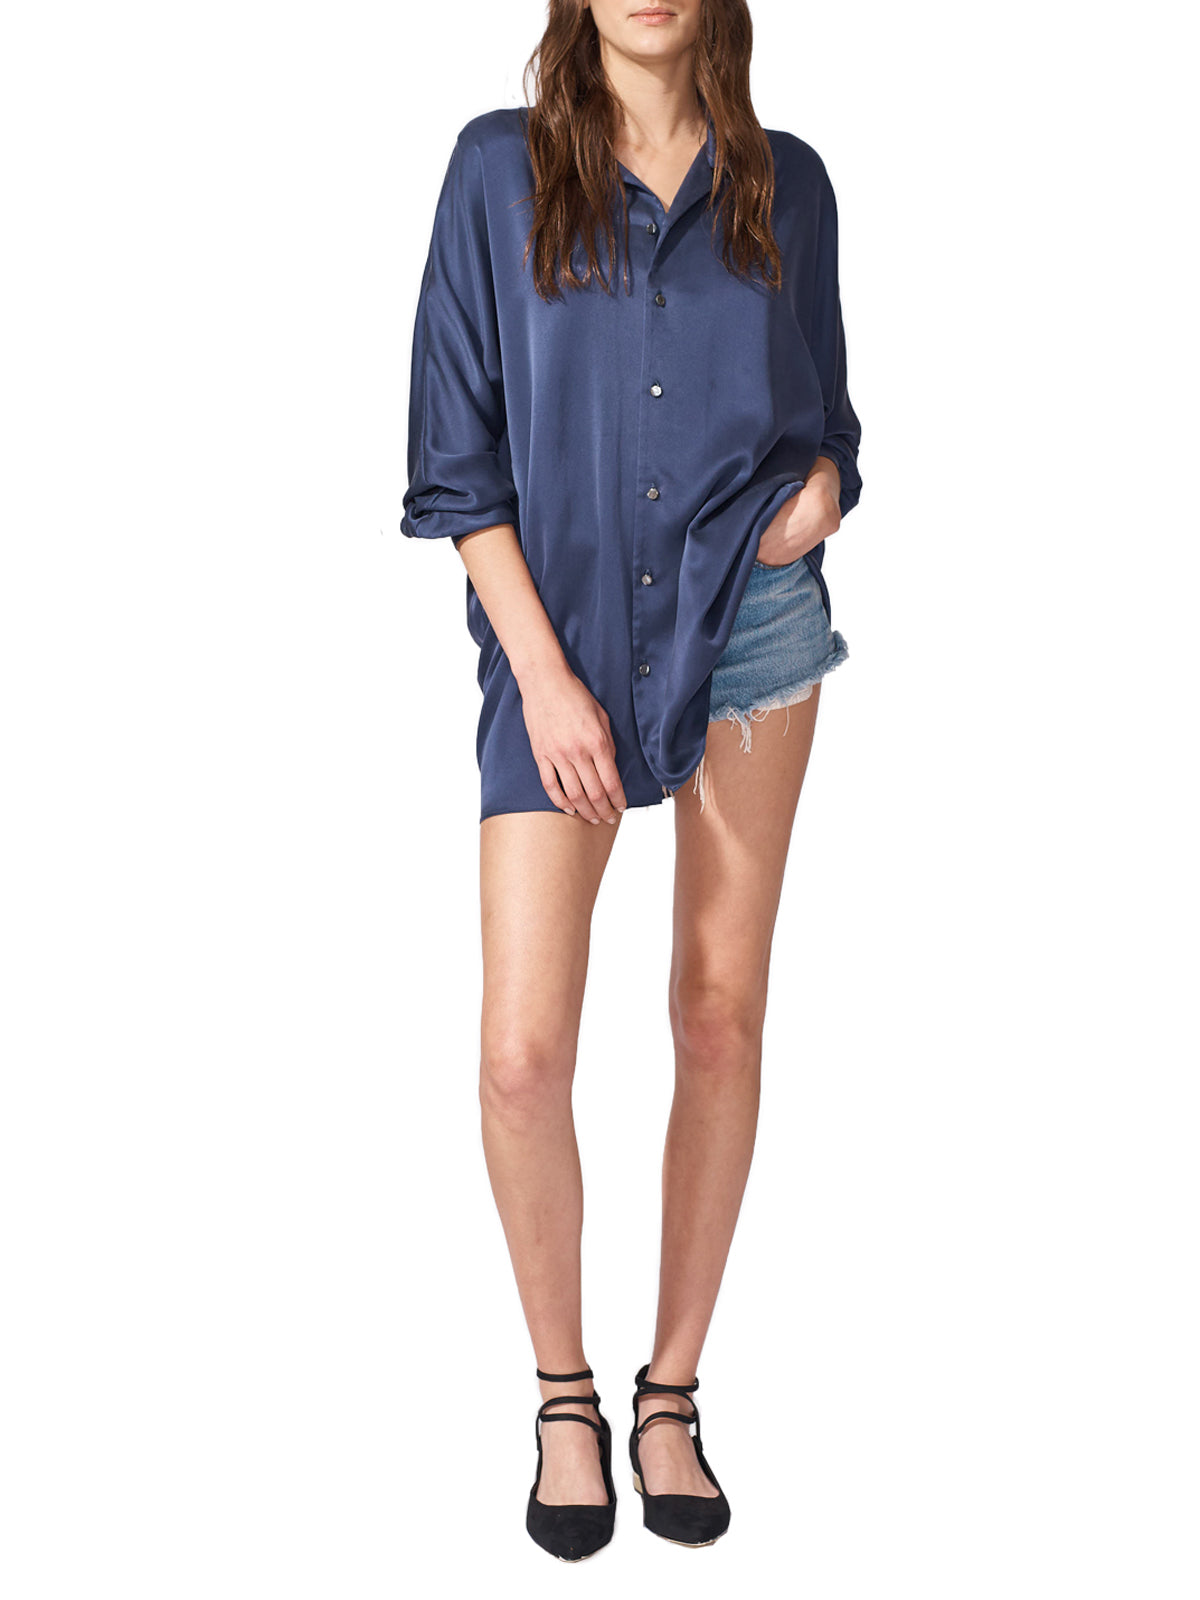 Oversized Navy Dolman Blouse